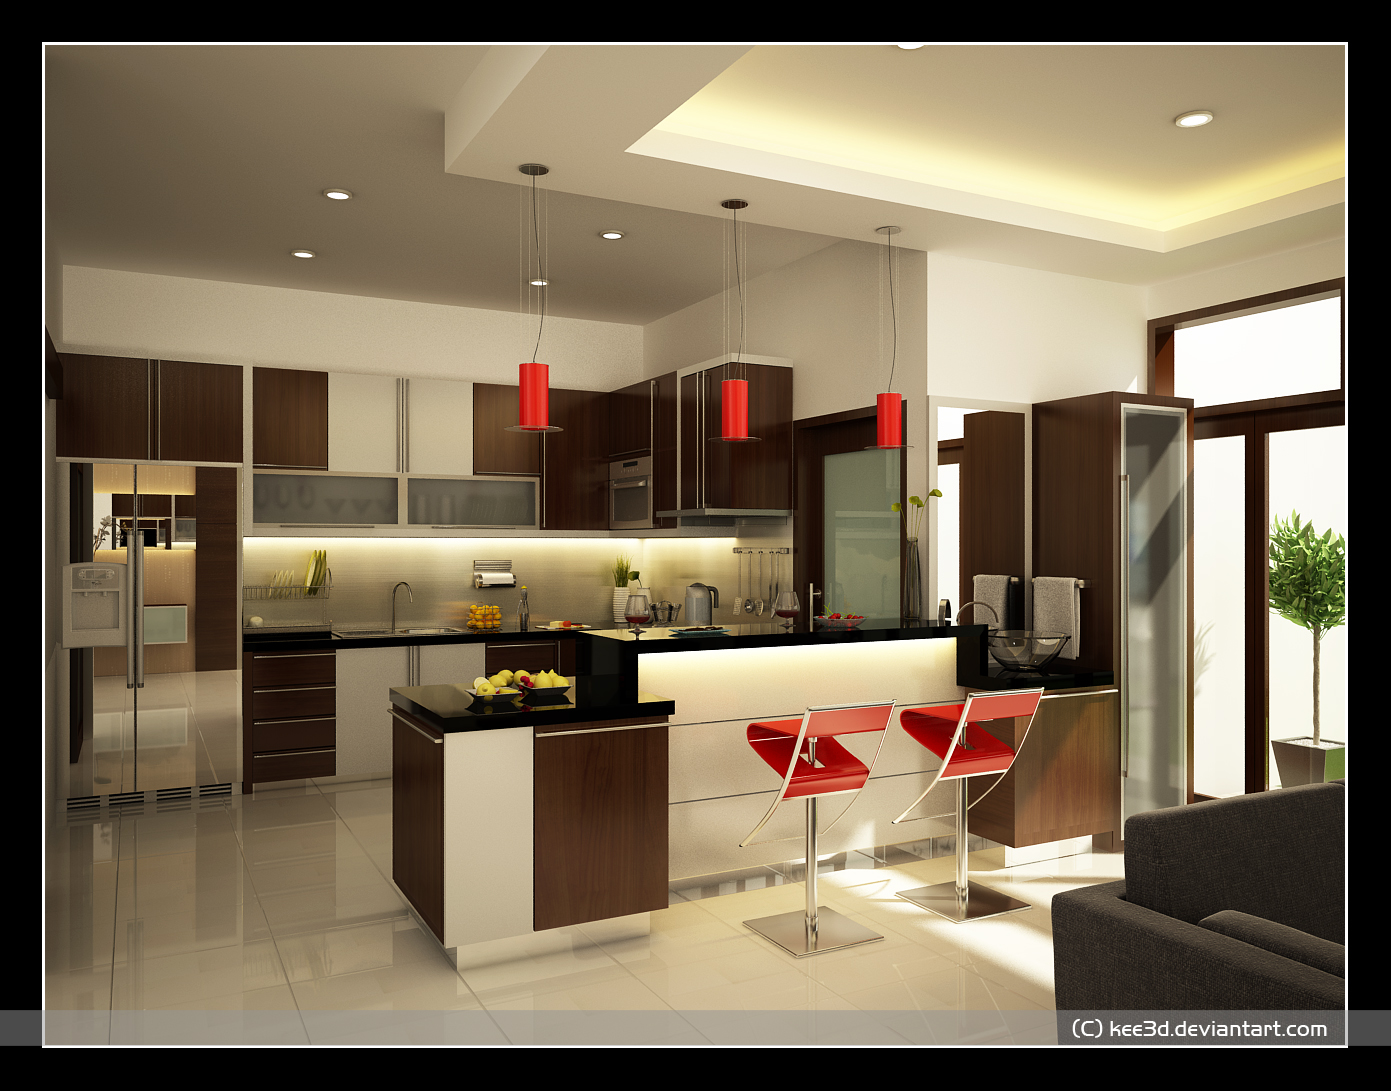 Kitchen design ideas for Home ideas kitchen